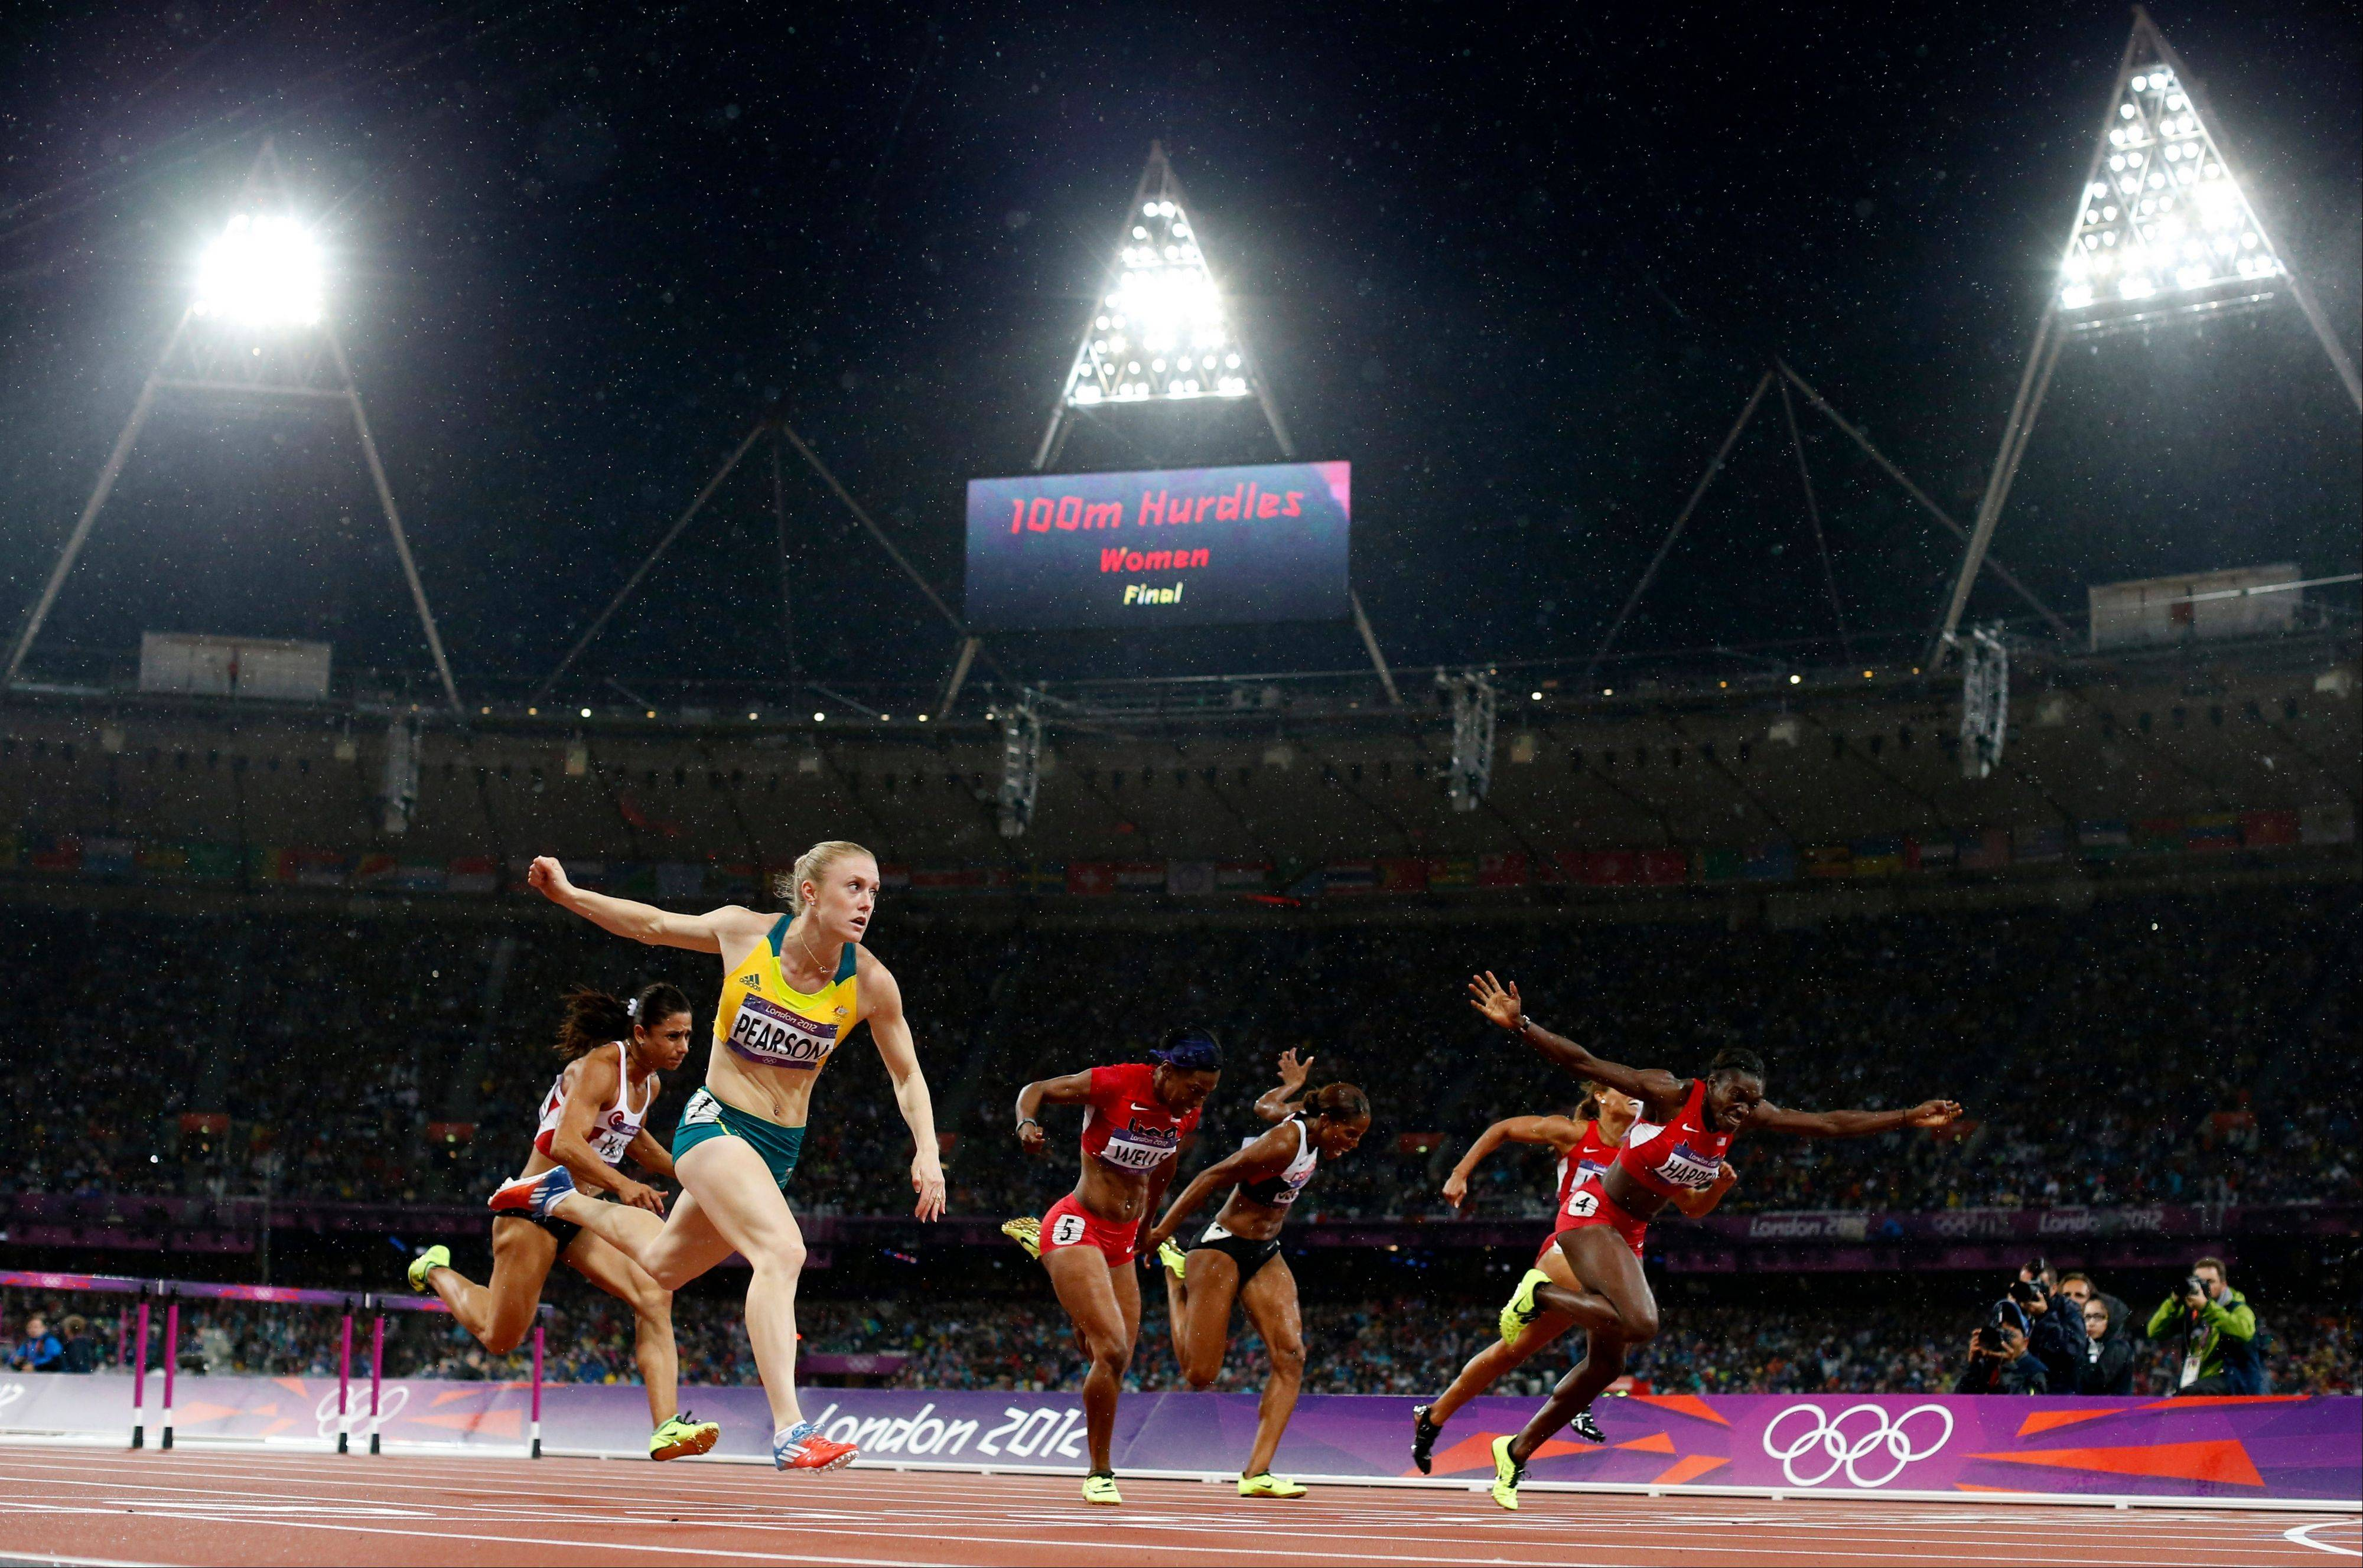 Australia's Sally Pearson, front left, crosses the finish line to win gold ahead of United States' Dawn Harper, front right, in the women's 100-meter hurdles final Tuesday.